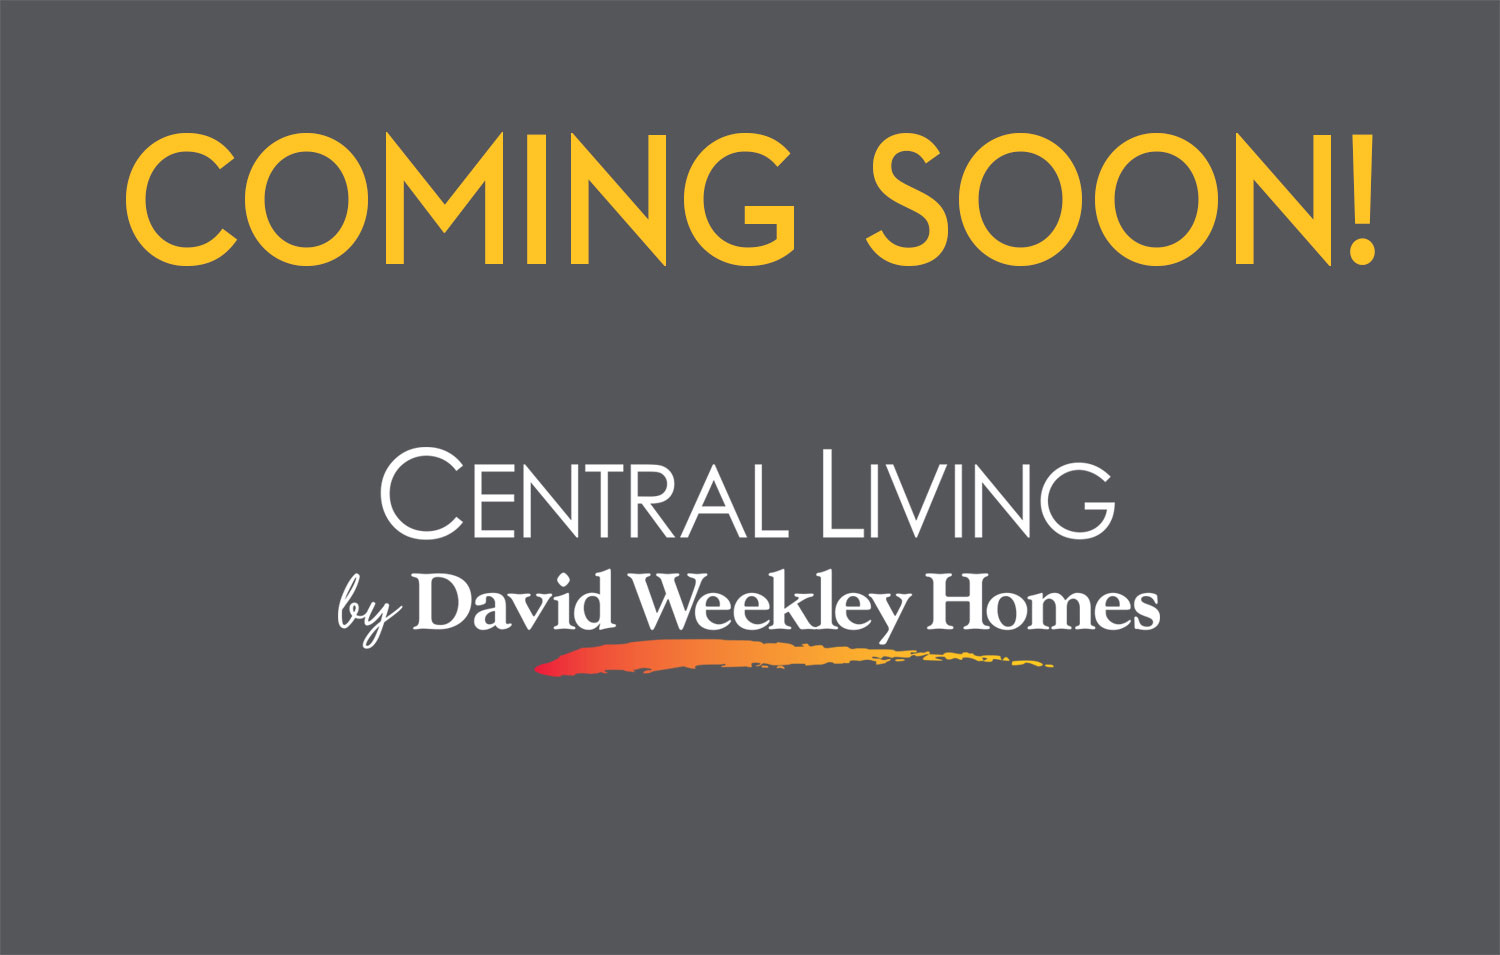 Coming Soon - Central Living Townhomes